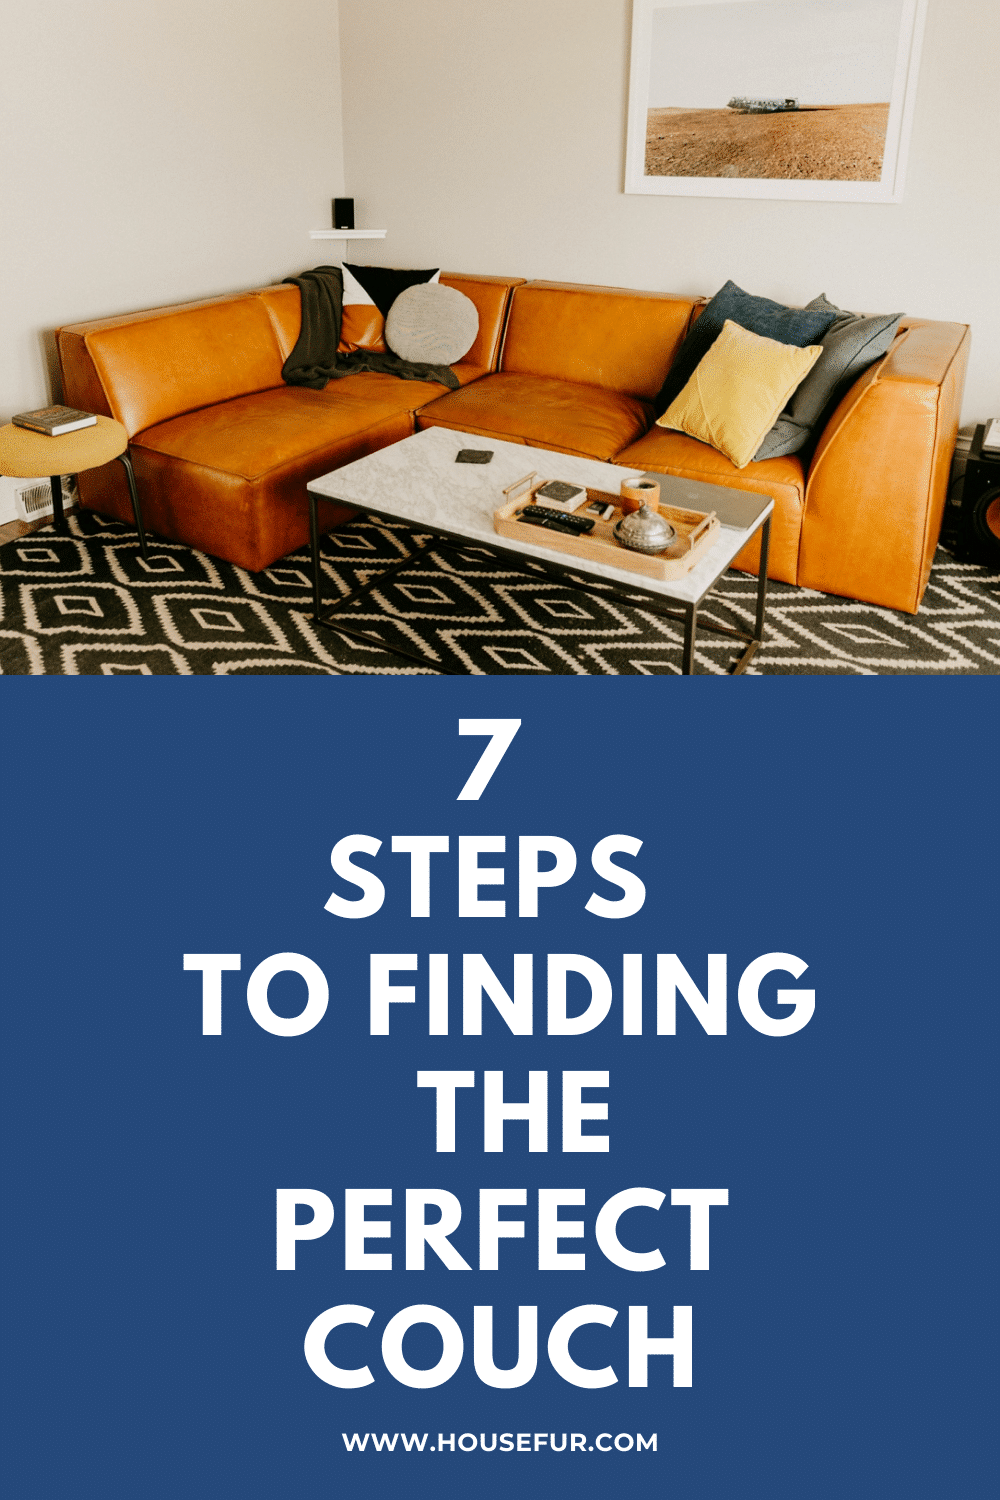 7 Steps To Finding The Perfect Couch